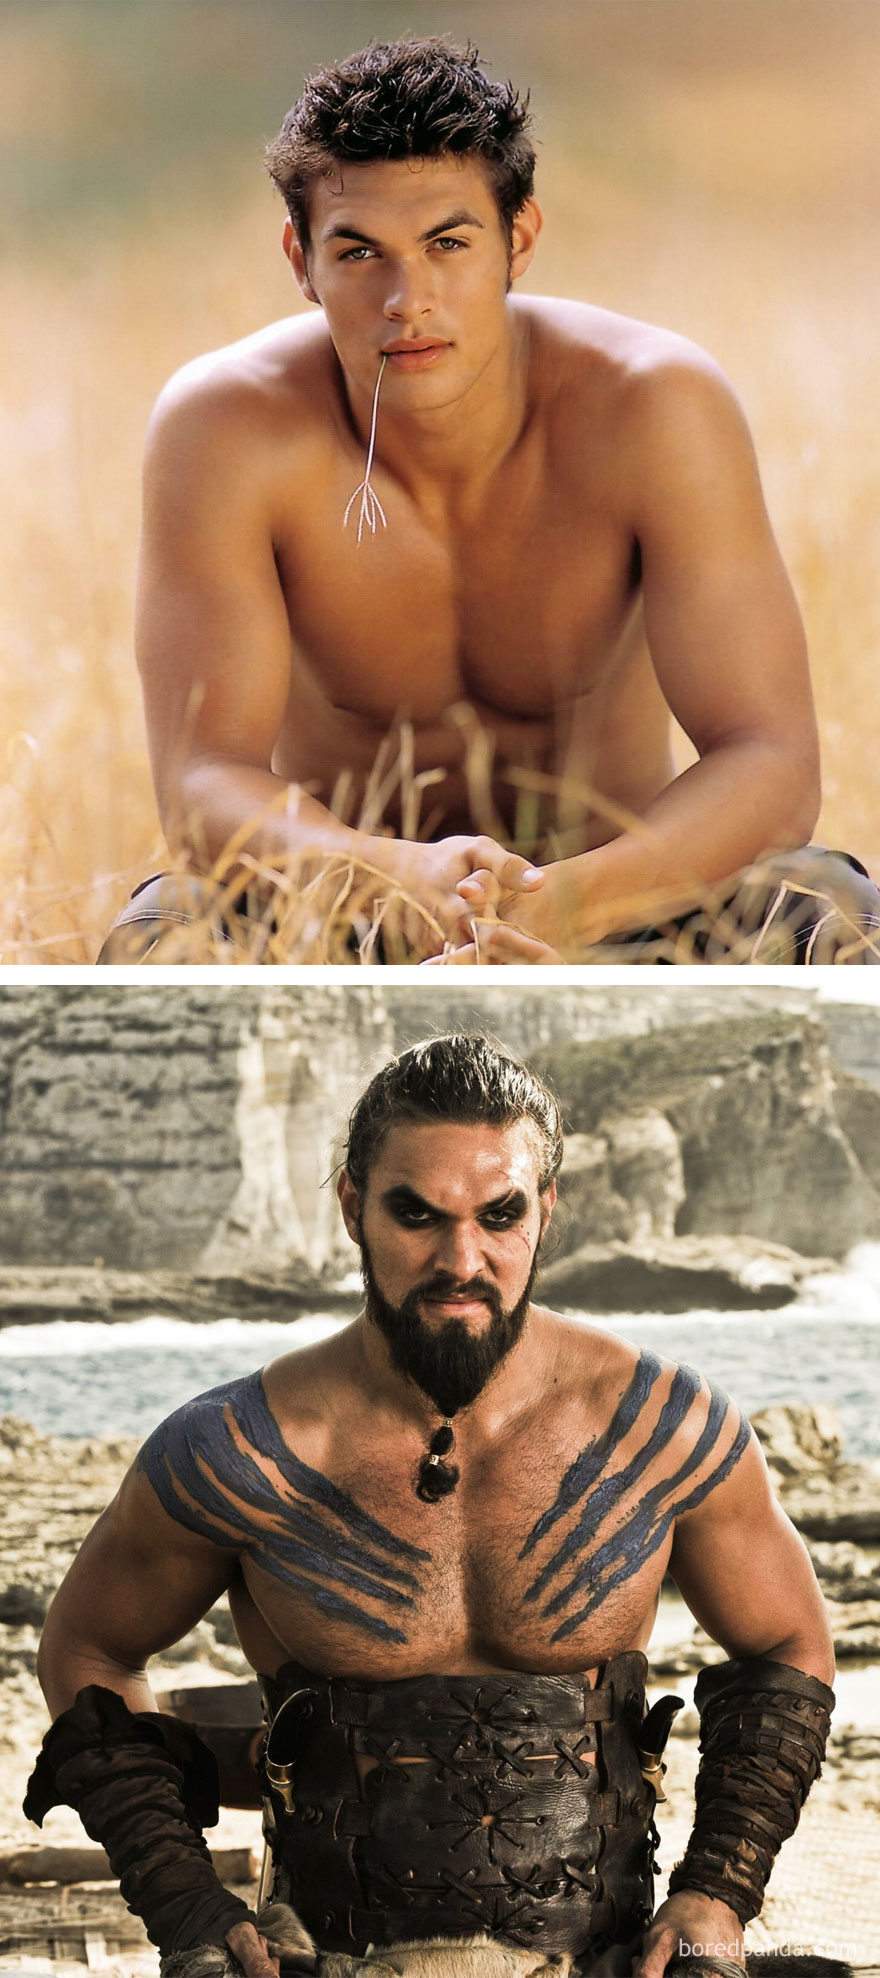 Jason Momoa As Jason (In 2003's Baywatch) And As Khal Drogo (In GoT)